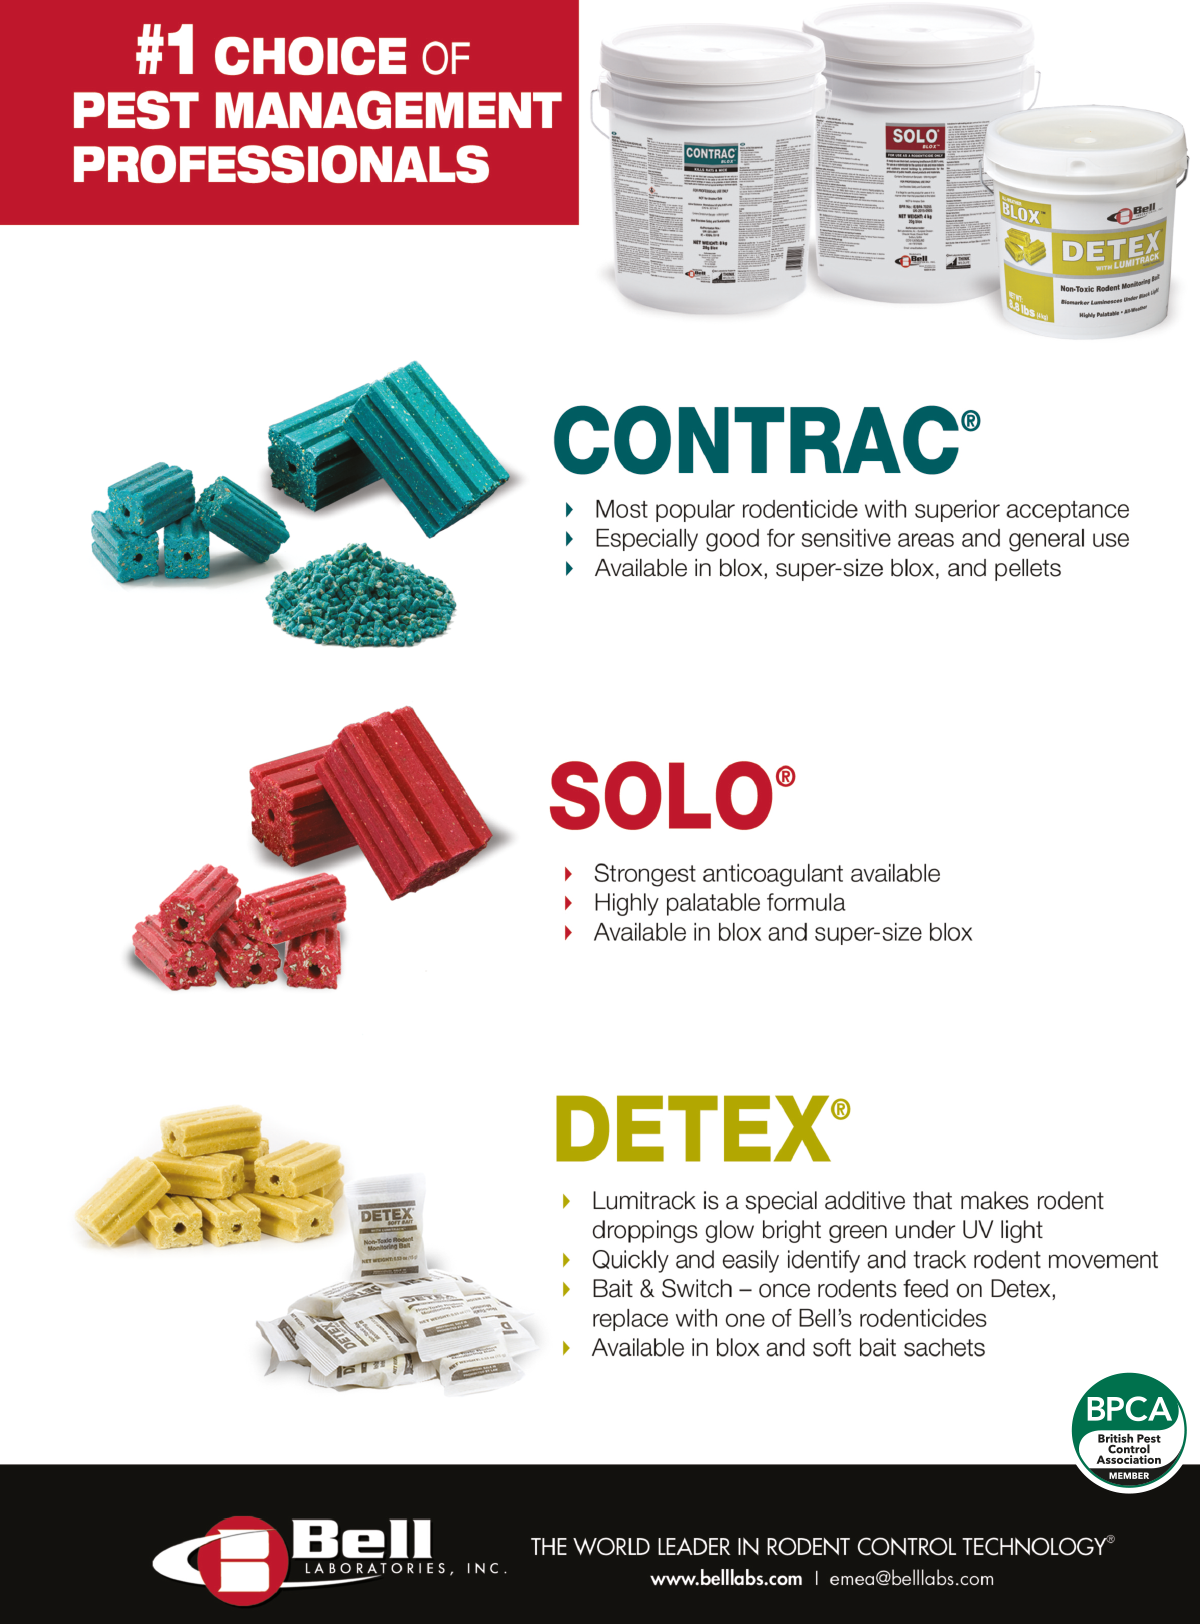 Contrac solo detrex advert from Bell Laboratories